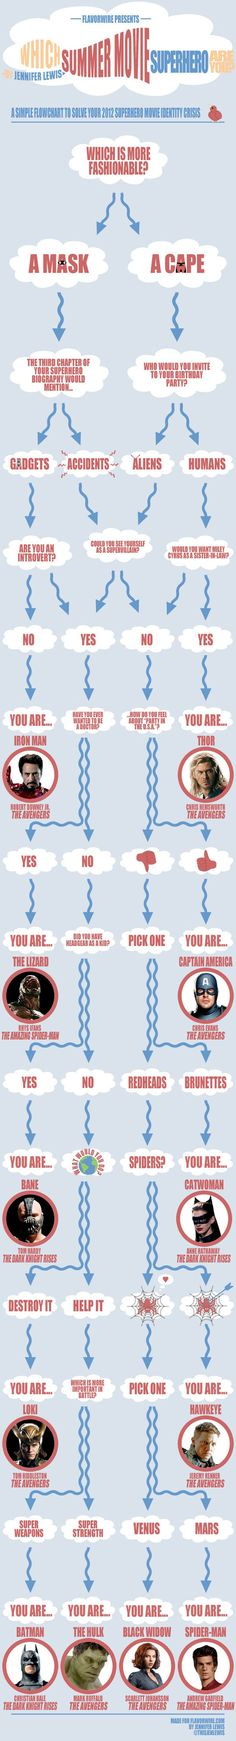 Which superhero are you? I'M THE BATMAN!!!!